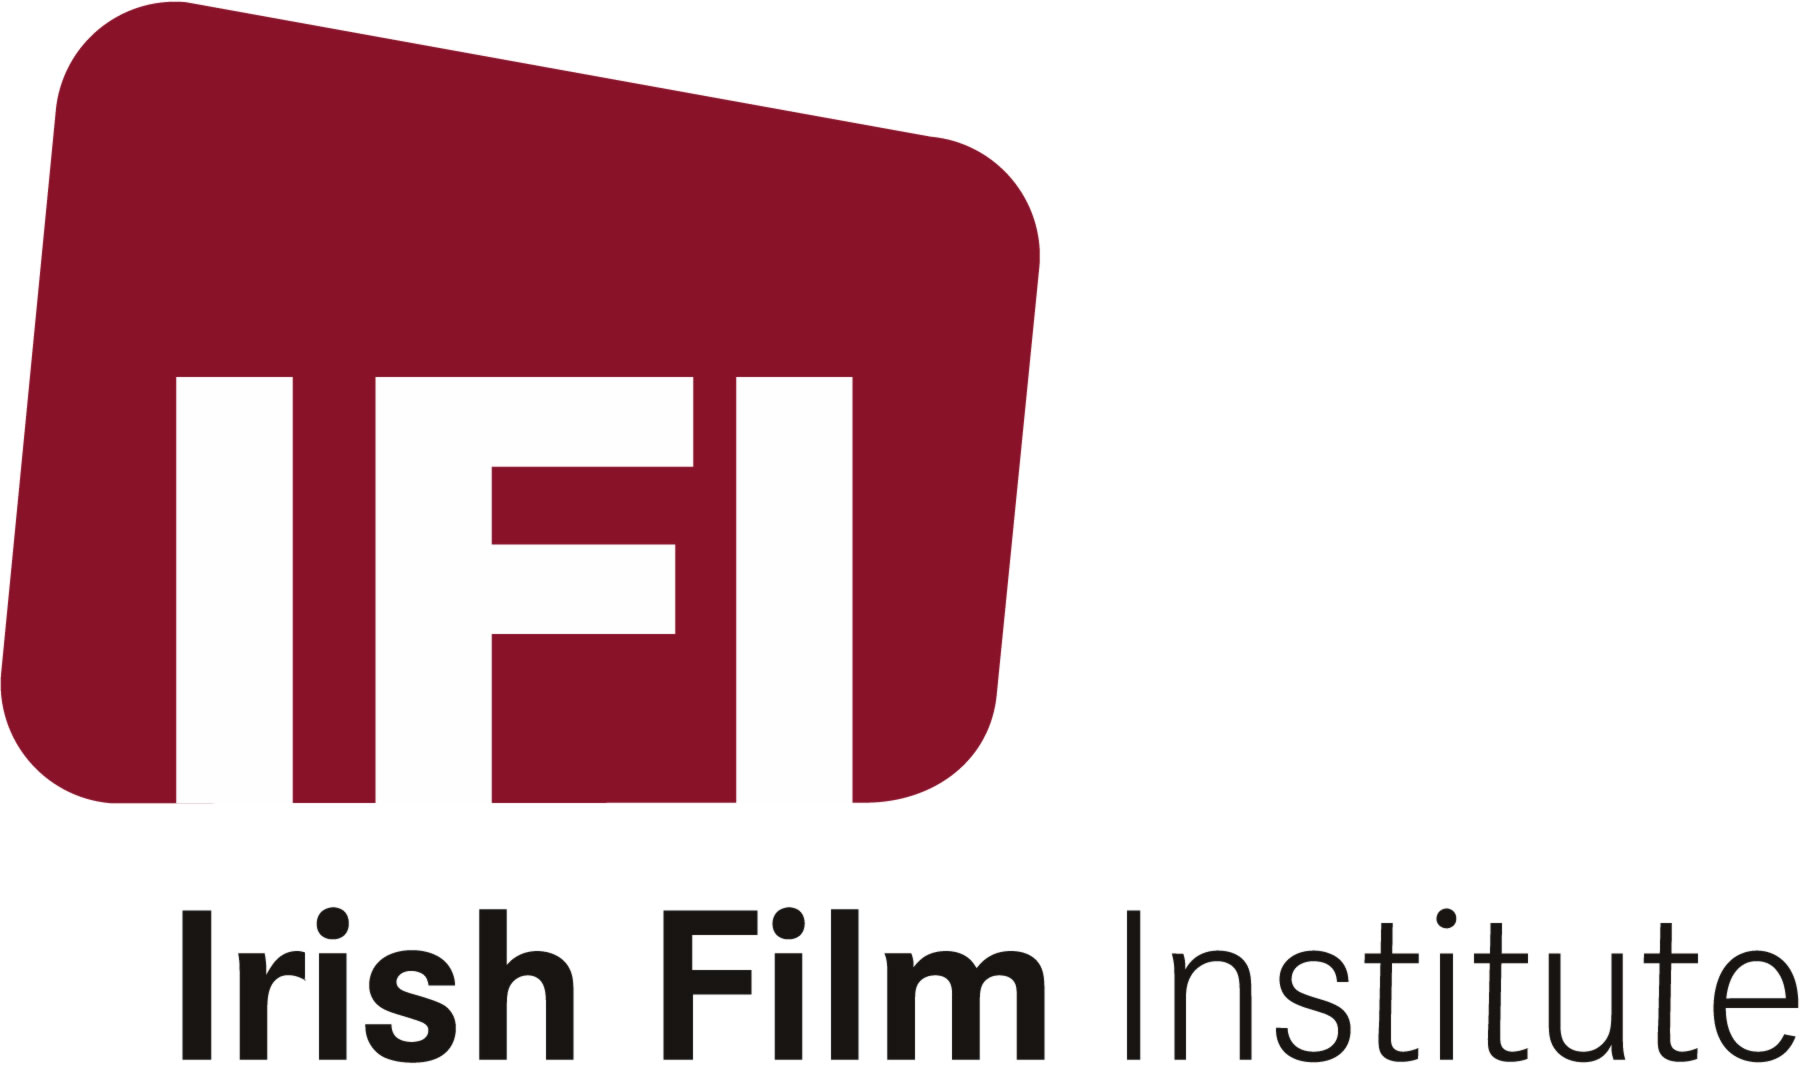 Ireland Film Institute